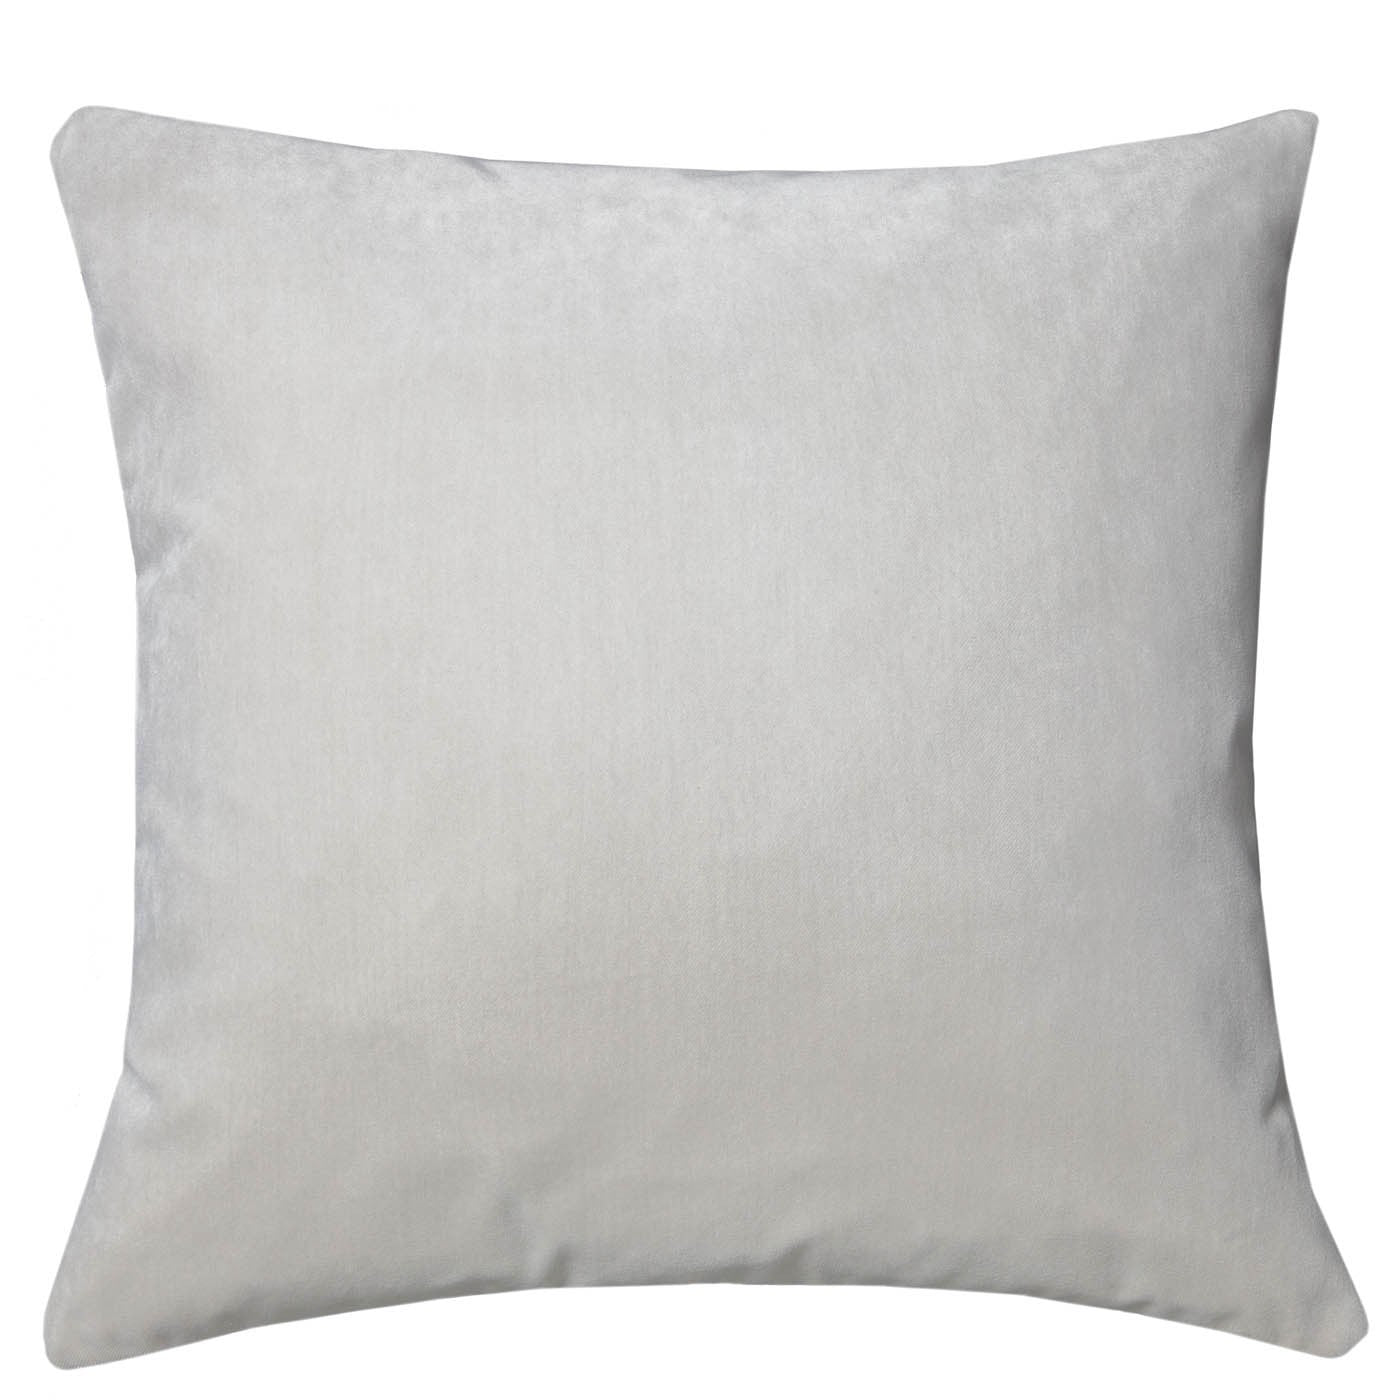 Large handmade cushion - Salt